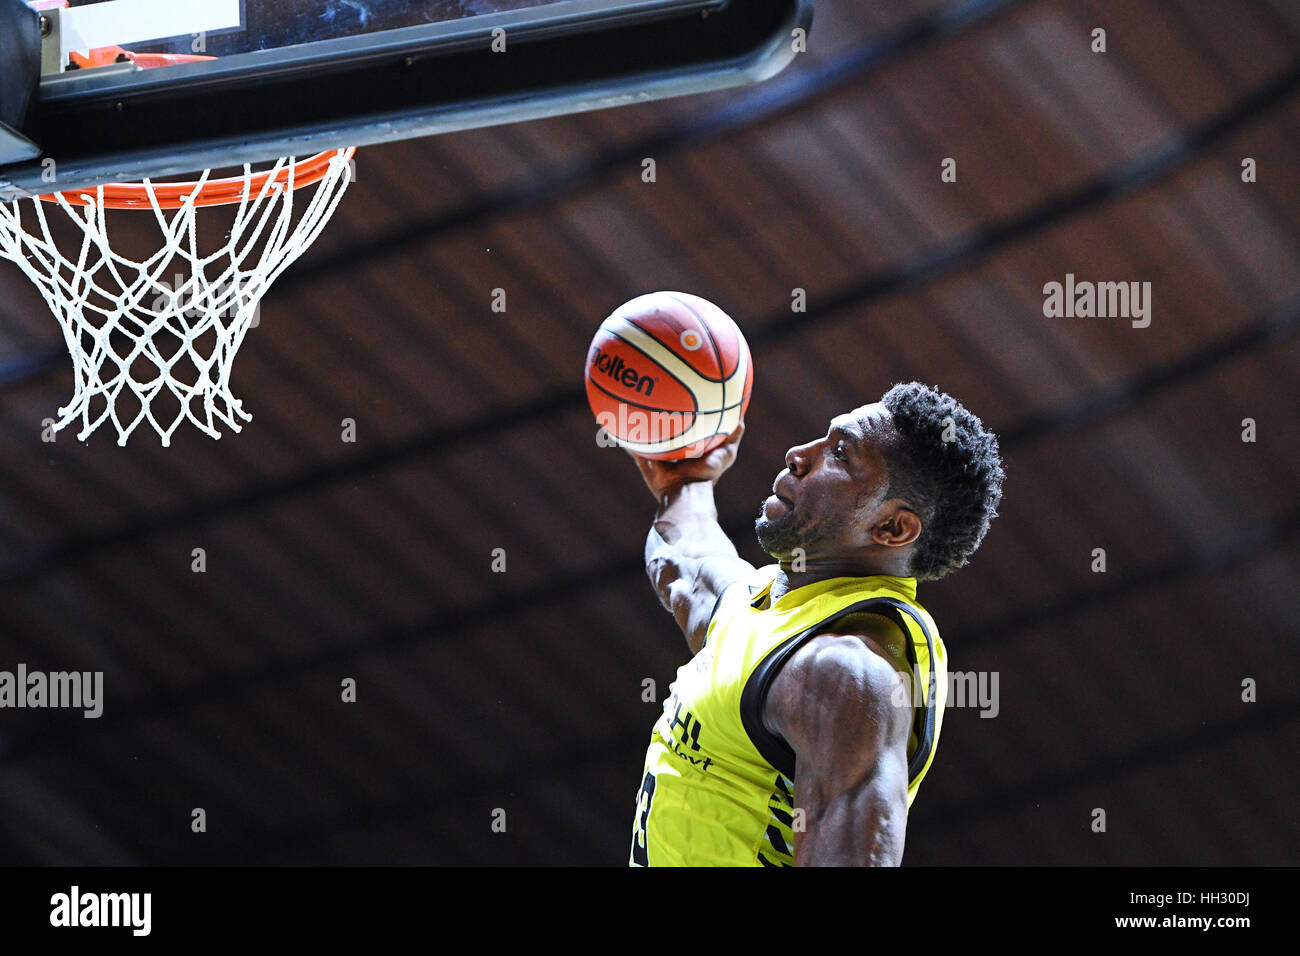 Tokyo, Japan. 15th Jan, 2017. Ira Brown (Sunrockers) during the B League All Star Game 2017 Dunk contest at 1st Stock Foto